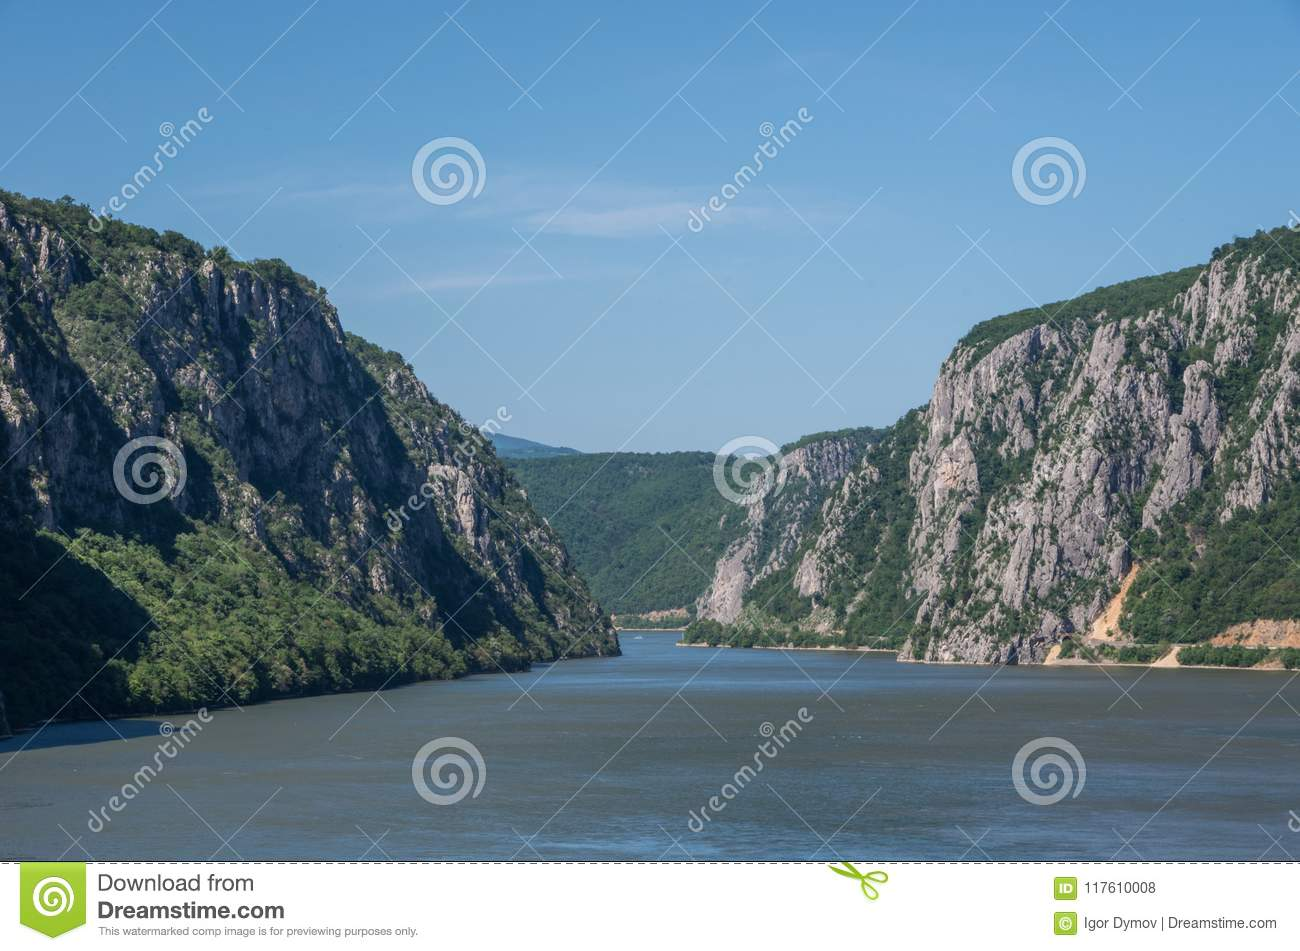 Danube border between Romania and Serbia. Landscape in the Danube Gorges